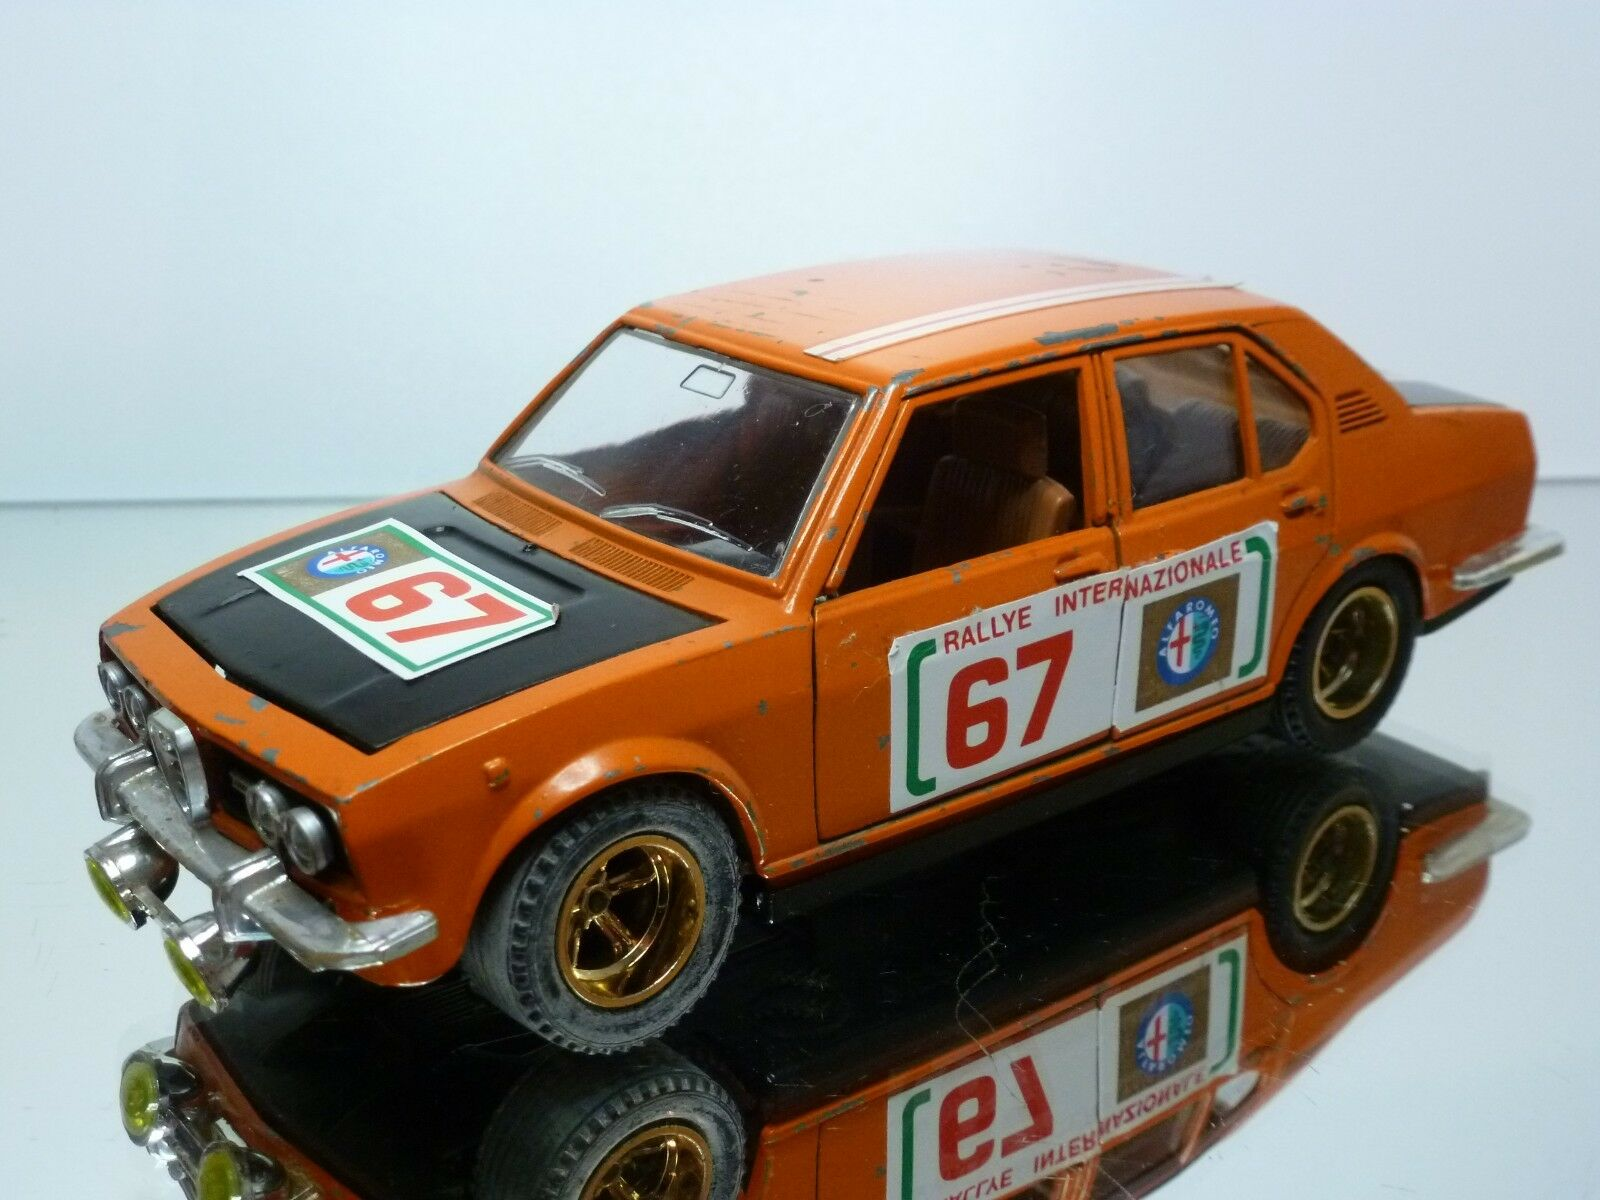 MEBETOYS 8584 ALFA ROMEO ALFETTA RALLYE  67 - Orange 1 25 RARE - NICE CONDITION